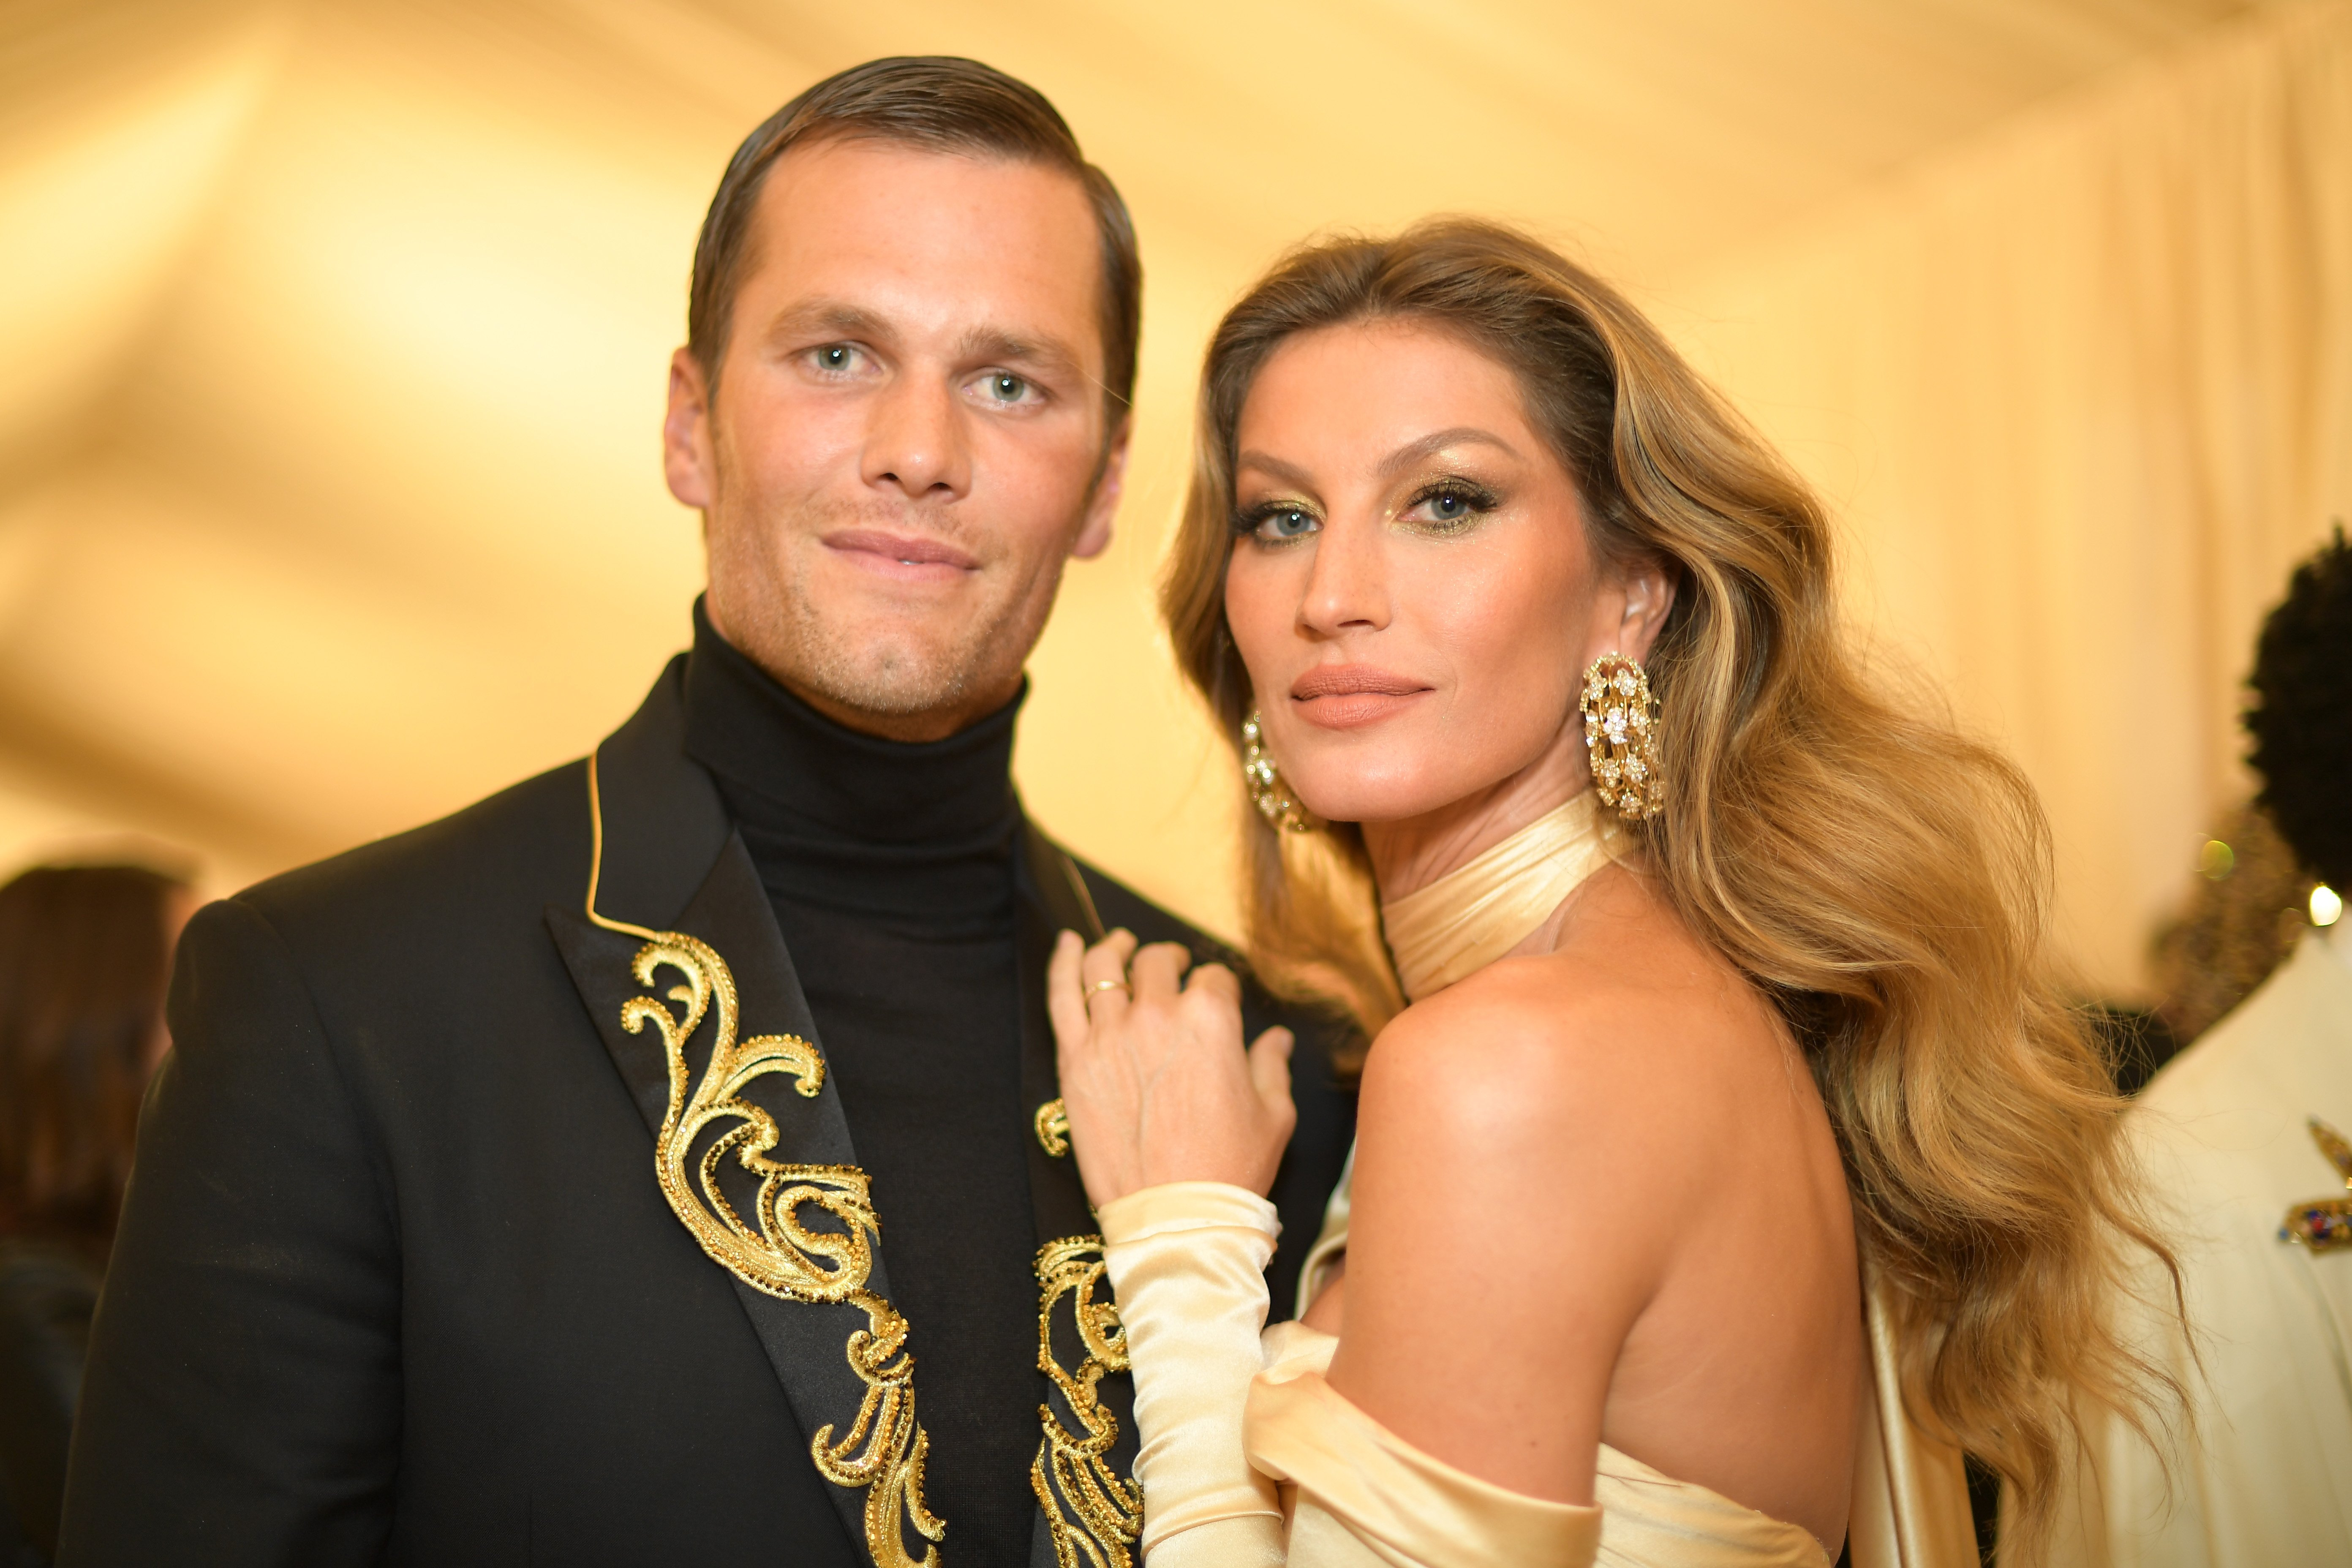 Tom Brady and Gisele Bundchen attend the Heavenly Bodies: Fashion & The Catholic Imagination Costume Institute Gala at The Metropolitan Museum of Art on May 7, 2018 in New York City   Photo: Getty Images